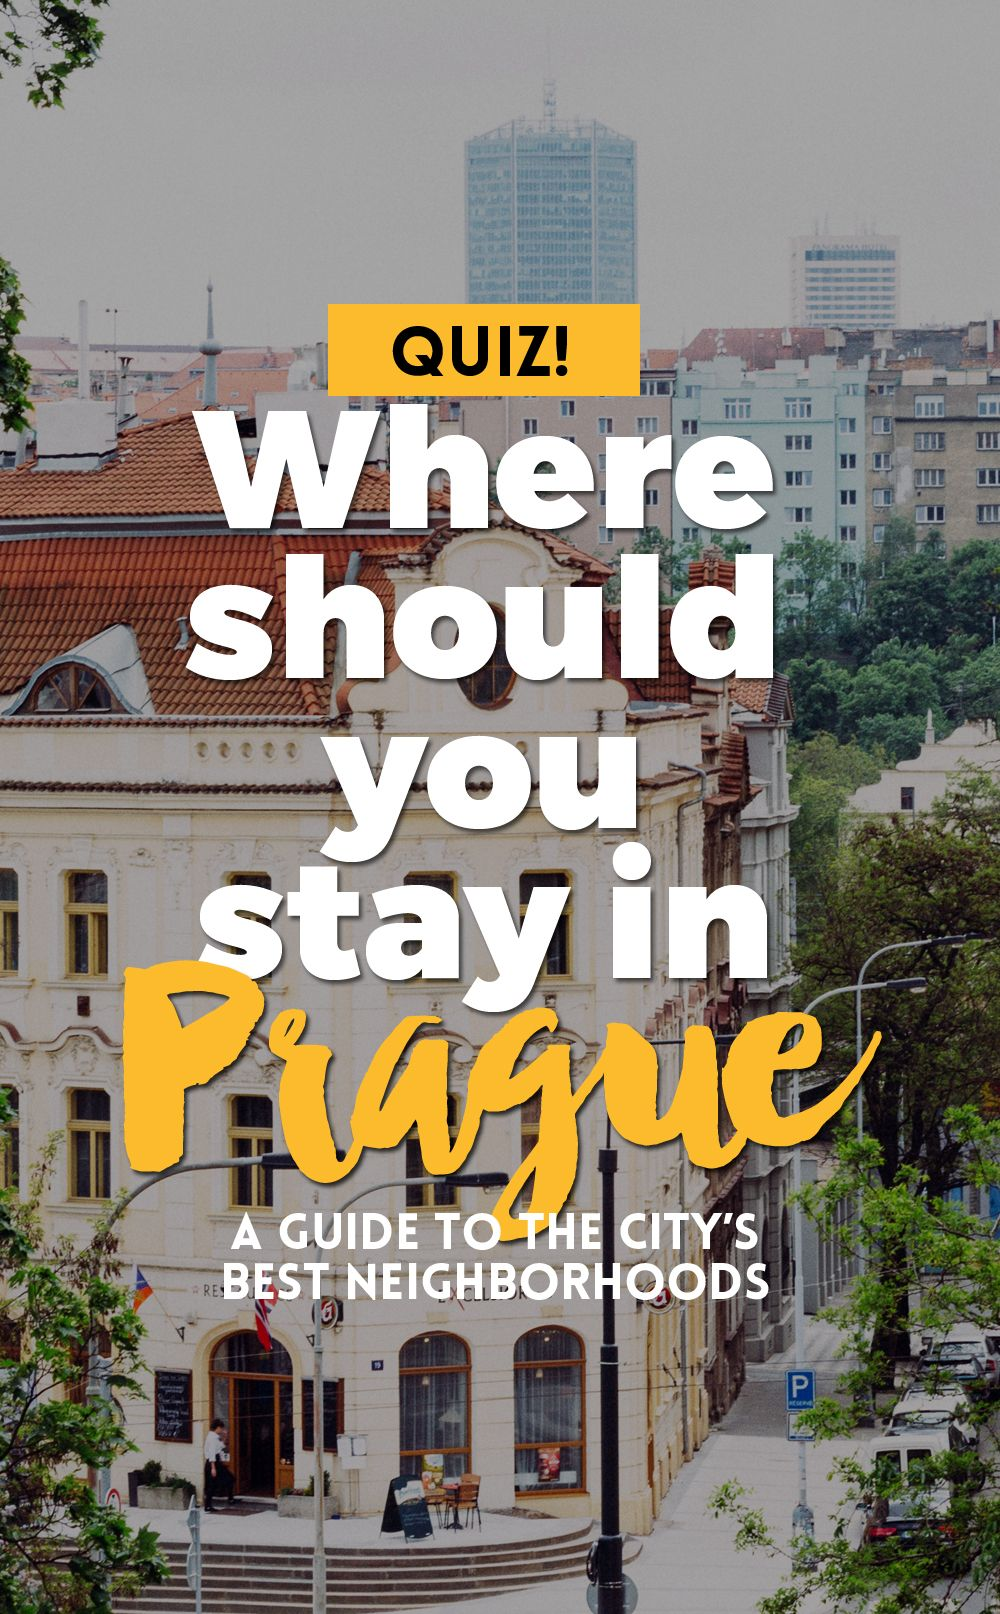 caprice A praha train Where to stay in Prague – a guide to the city's neighborhoods and best  accommodations